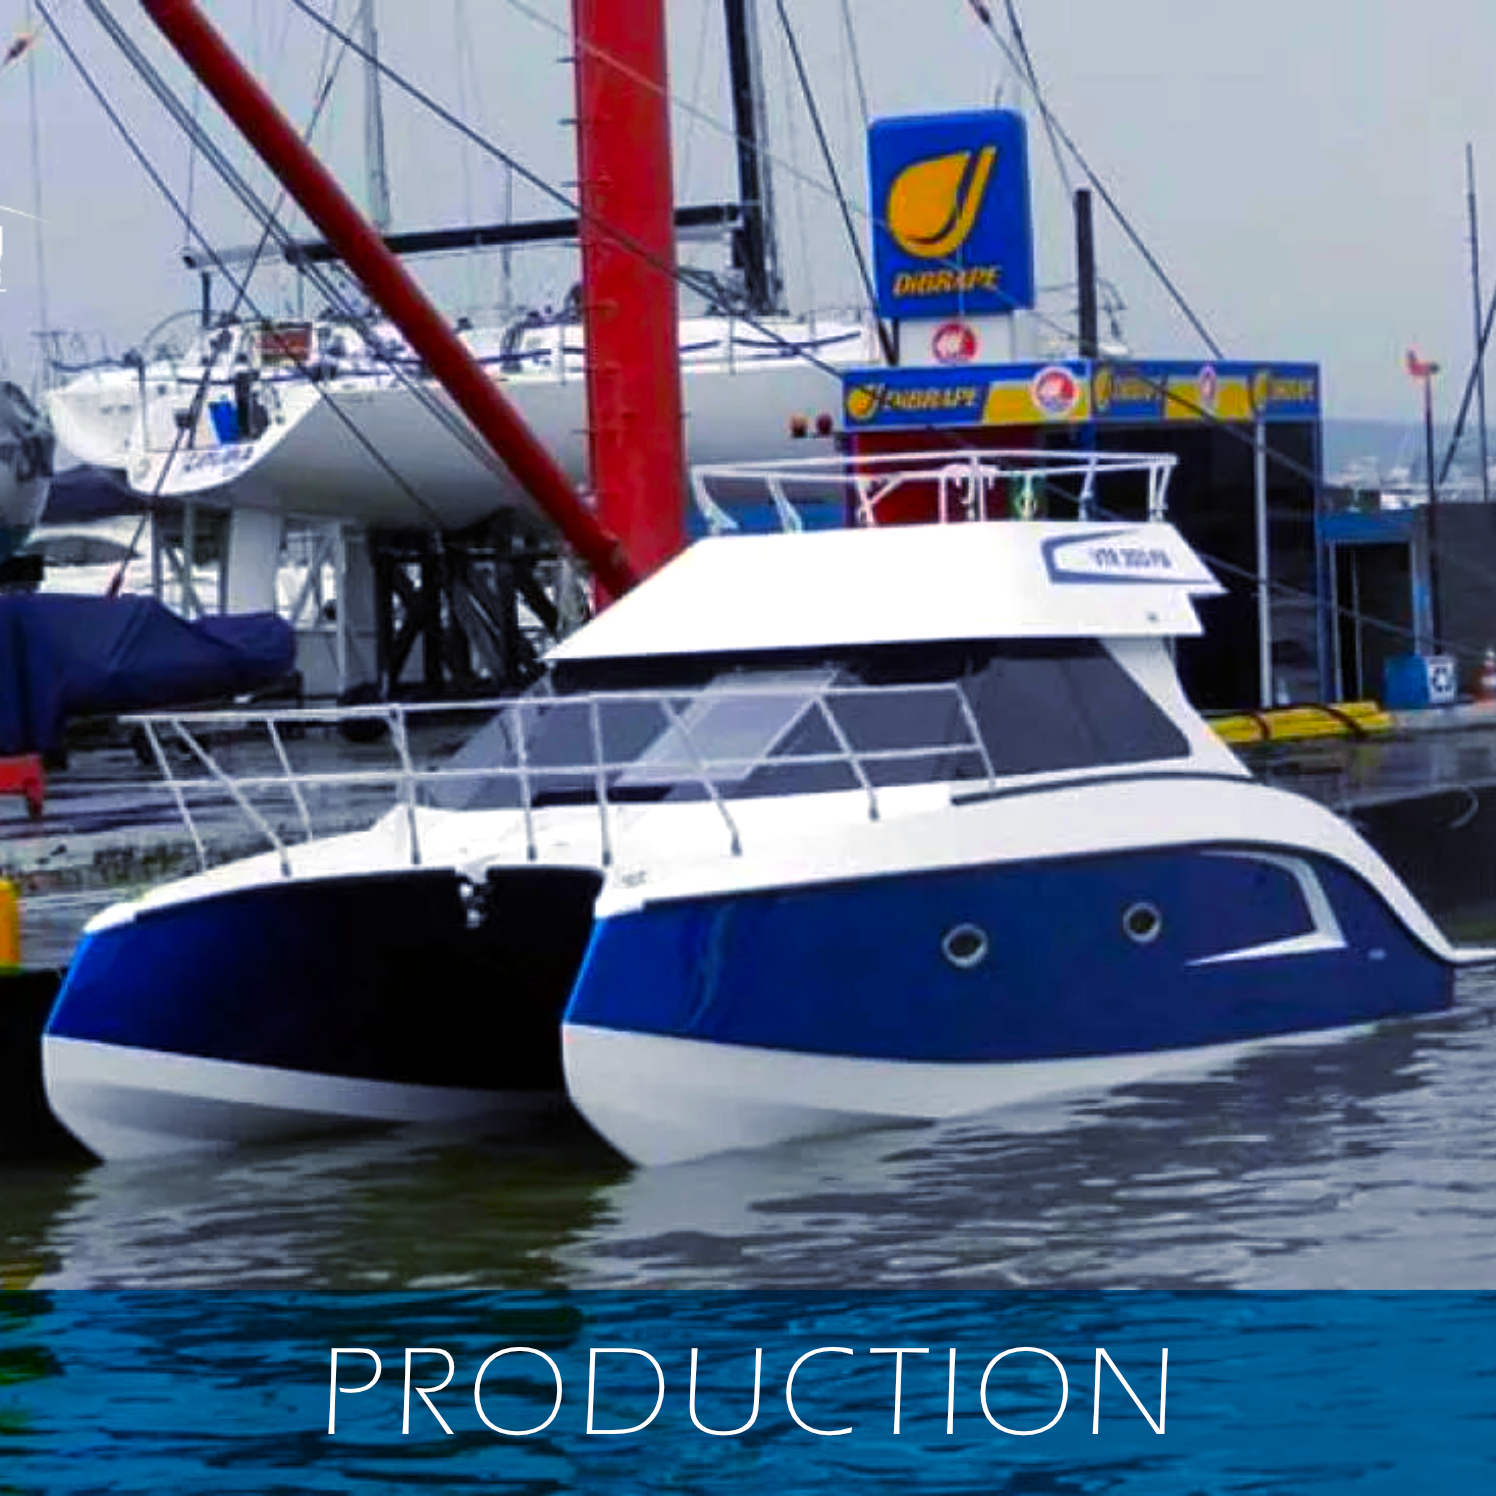 Schionning Designs International SDI Sailing, Power and Commercial Multihull Catamarans/Trimarans and Monohull Builds in Production